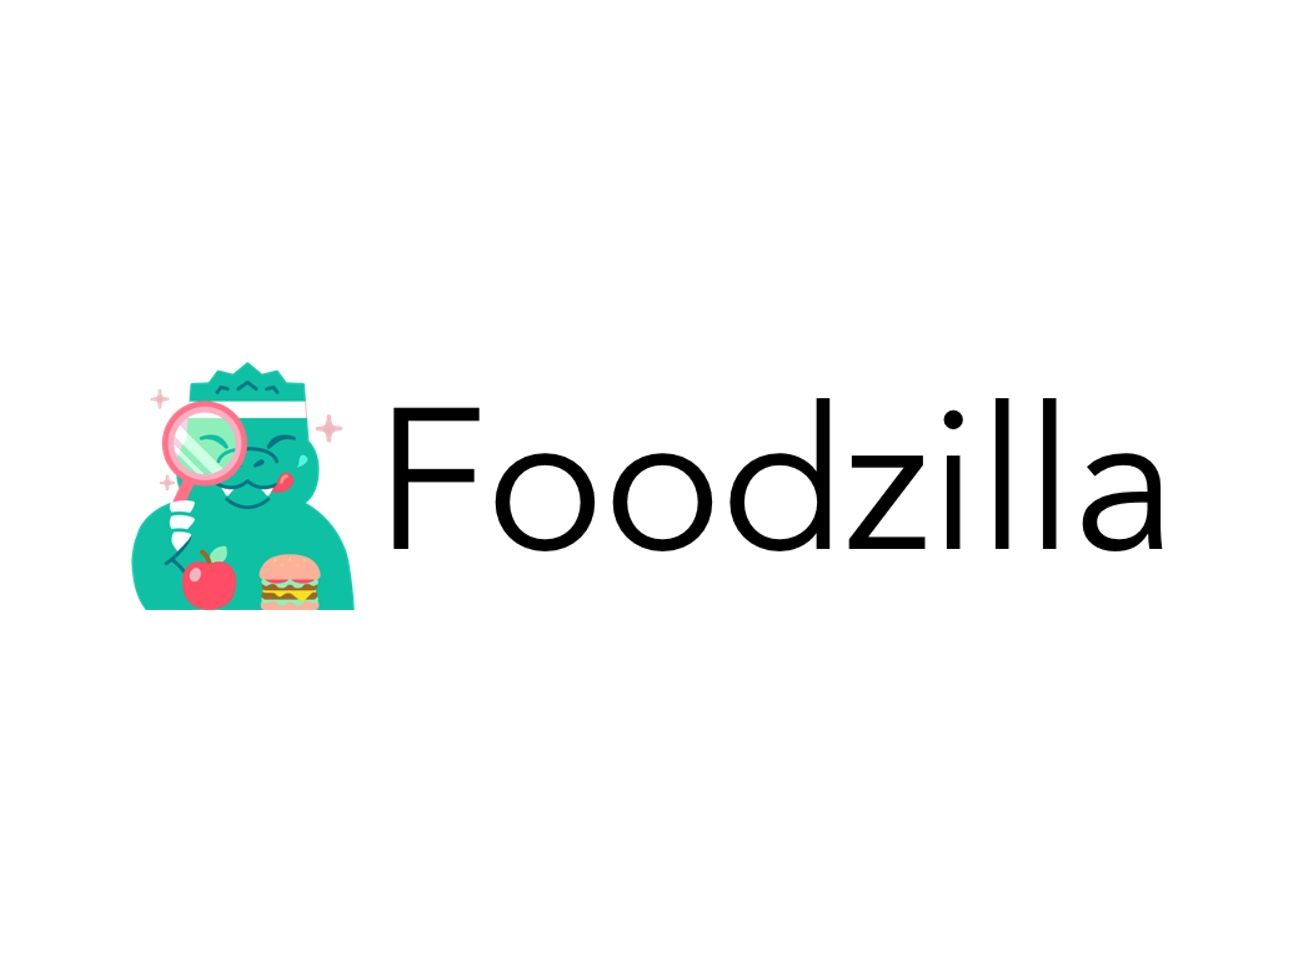 Foodzilla on desktop, iPad, and mobile